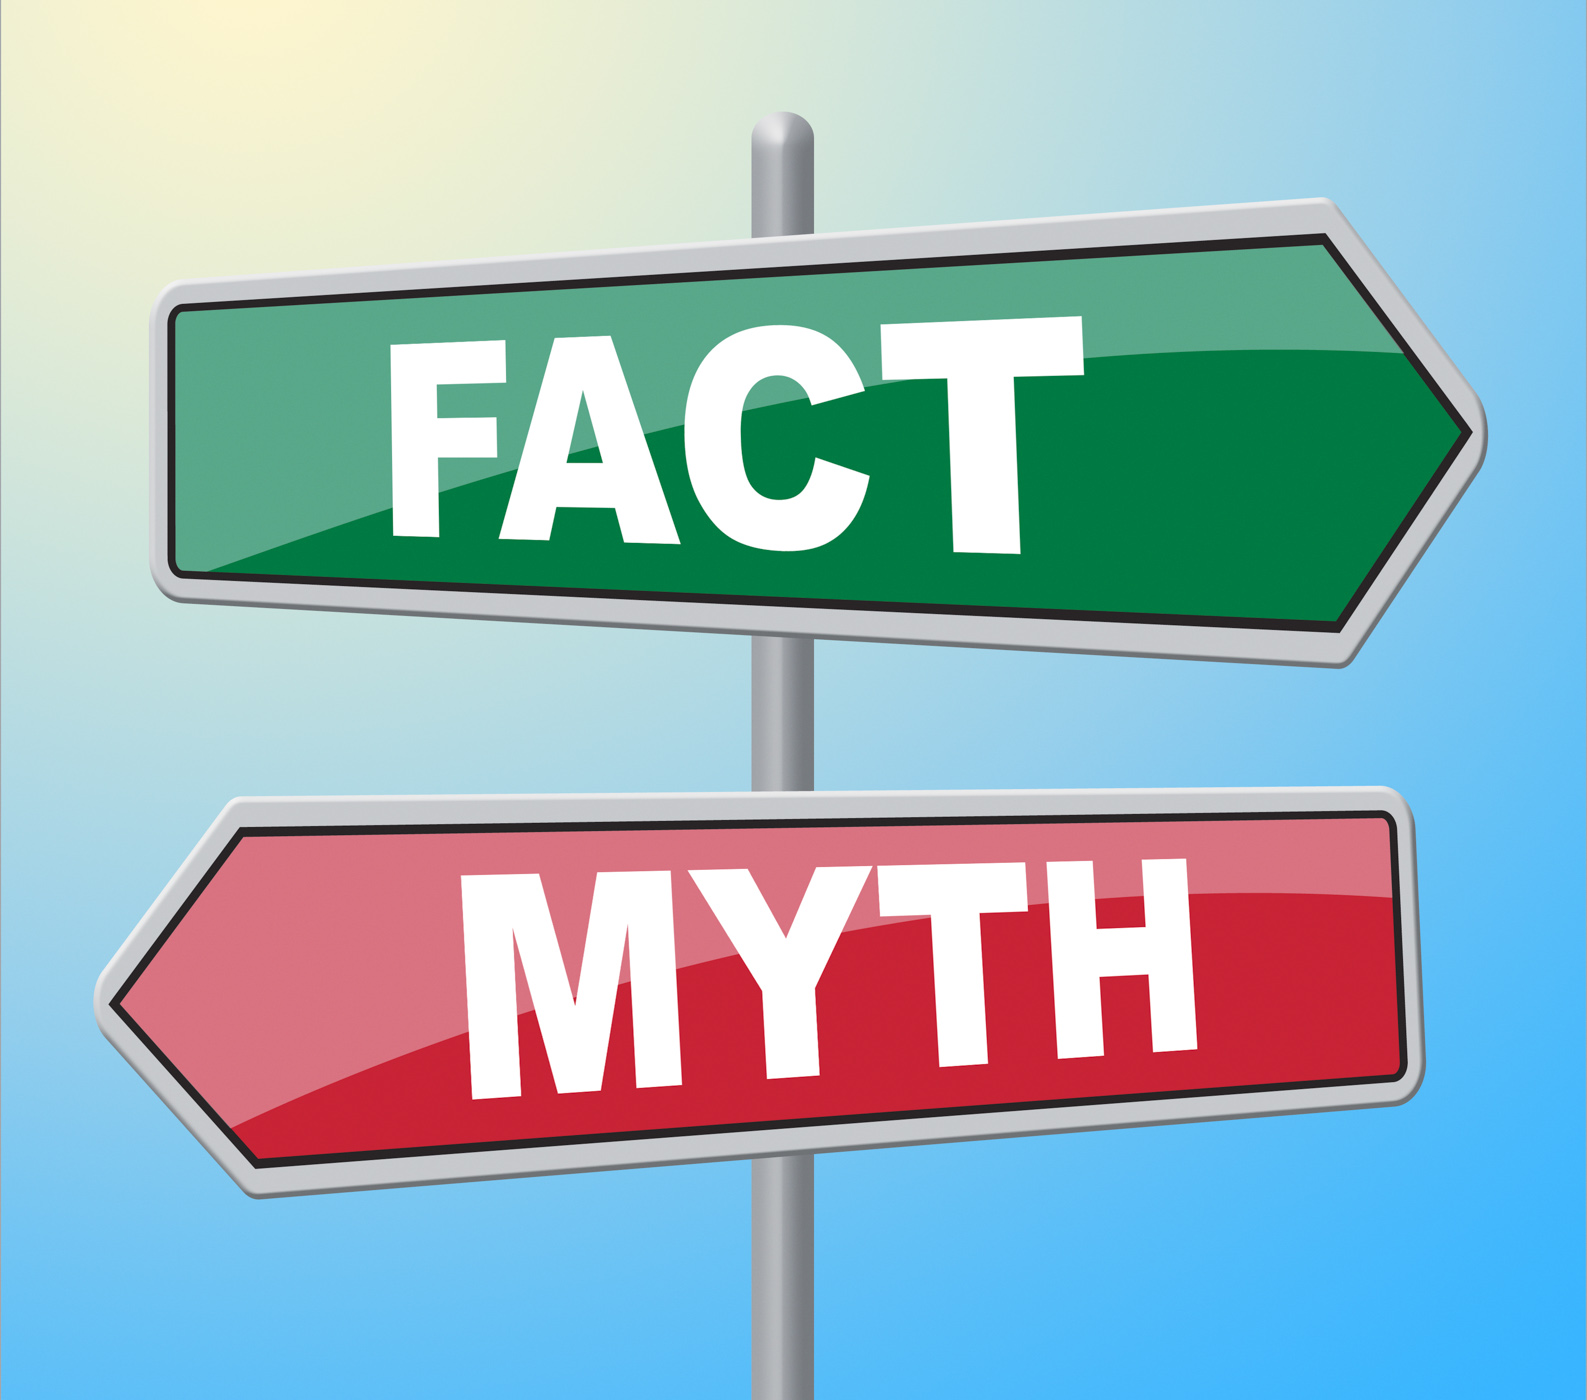 Fact myth signs indicates the facts and untrue photo